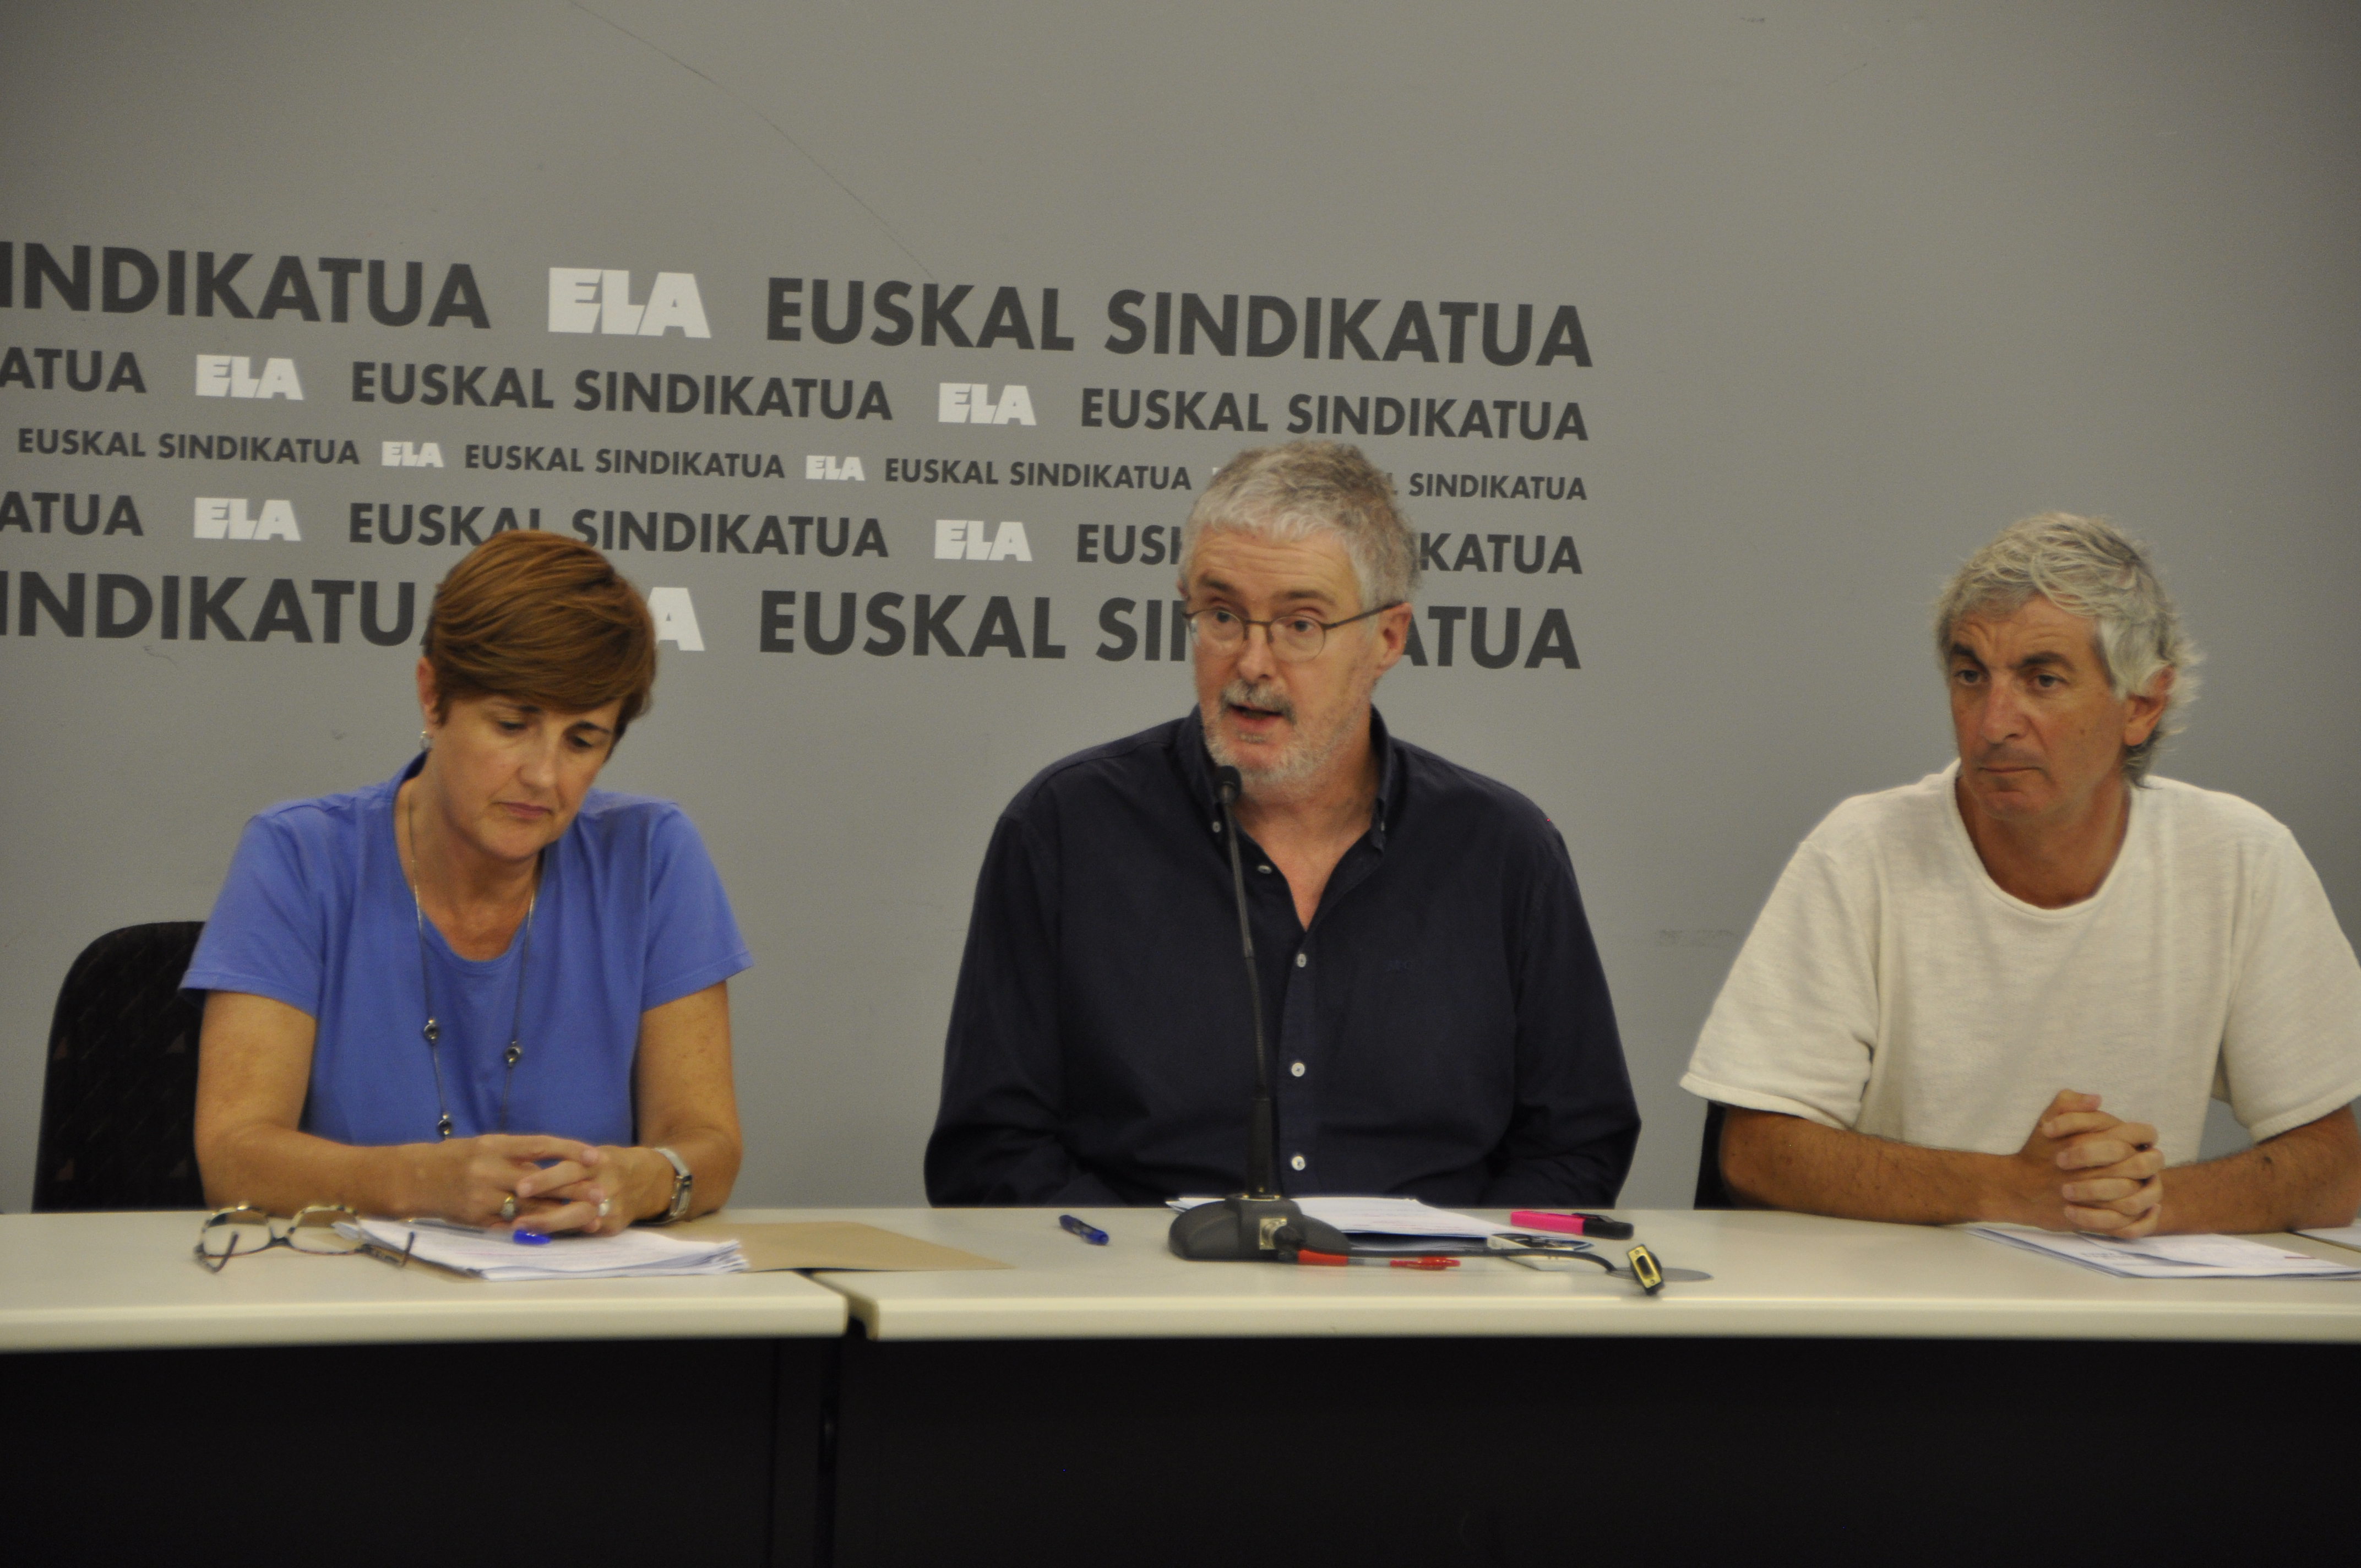 The Basque Government's Proposed Decree sidelines the trade